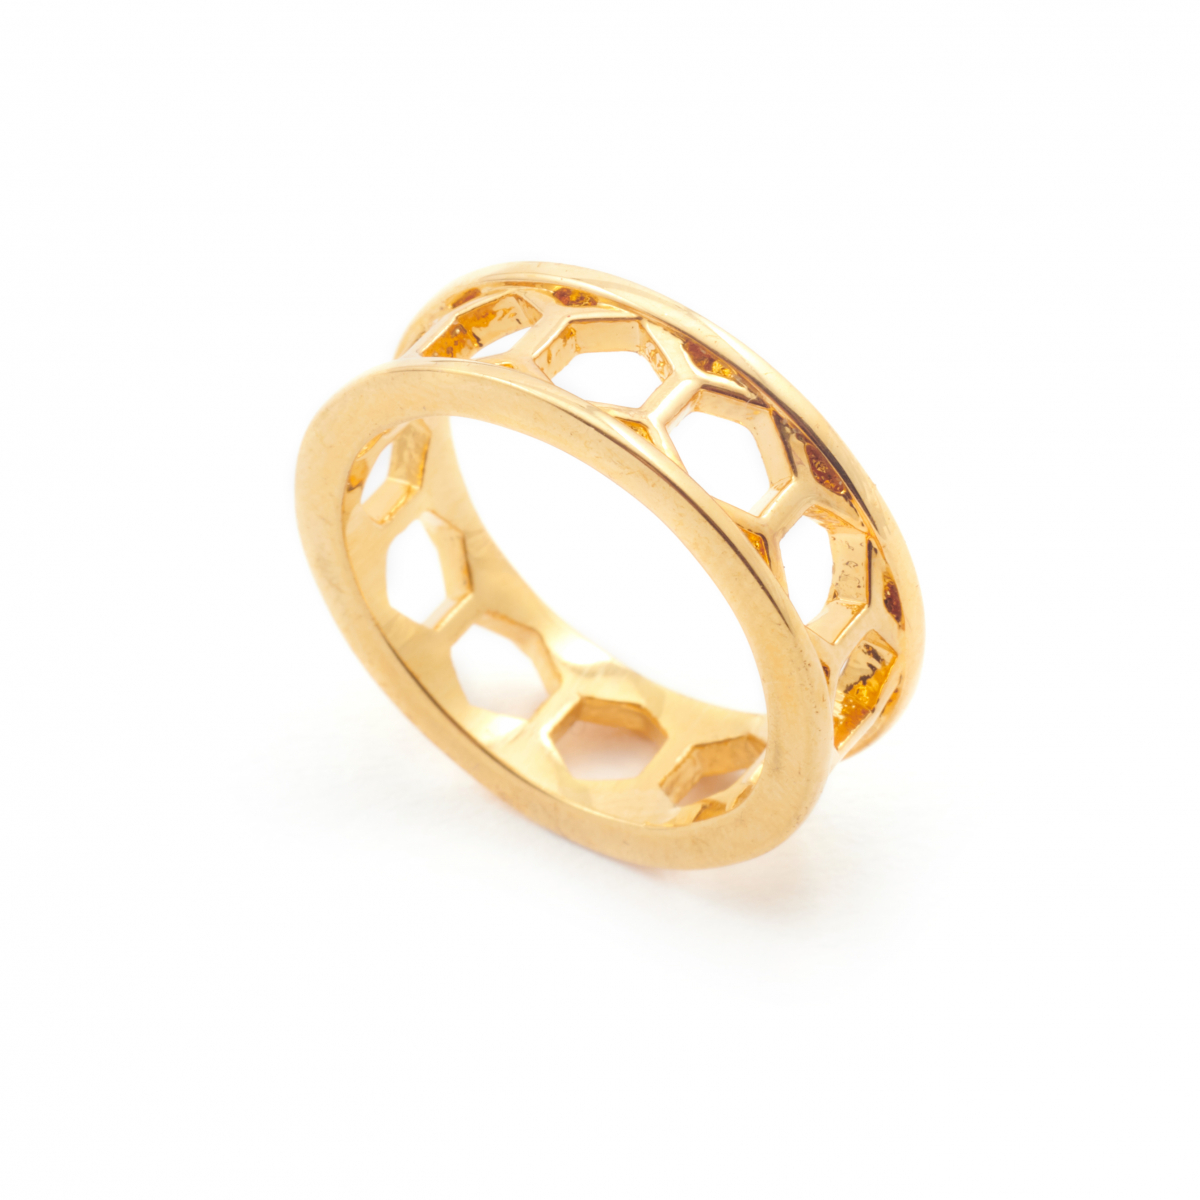 Archive Honeycomb Ring - Gold - Size Small